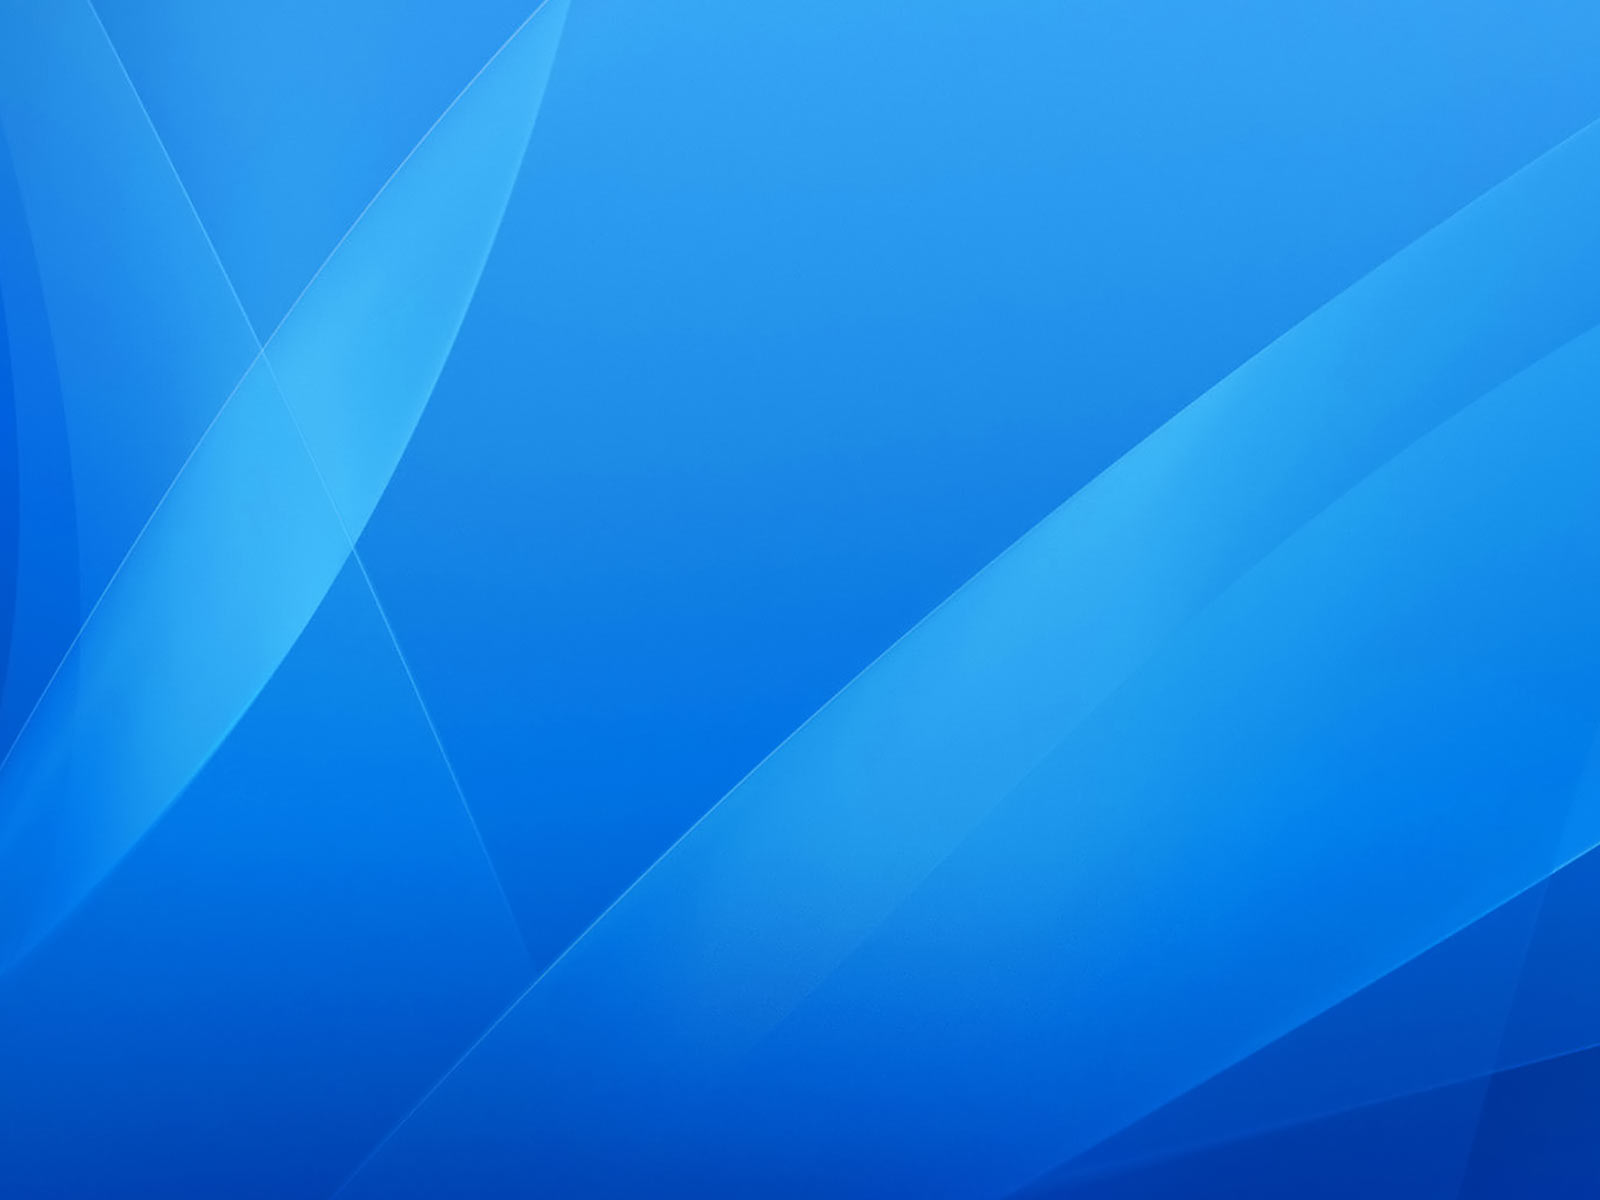 windows 7 images aqua blue hd wallpaper and background photos